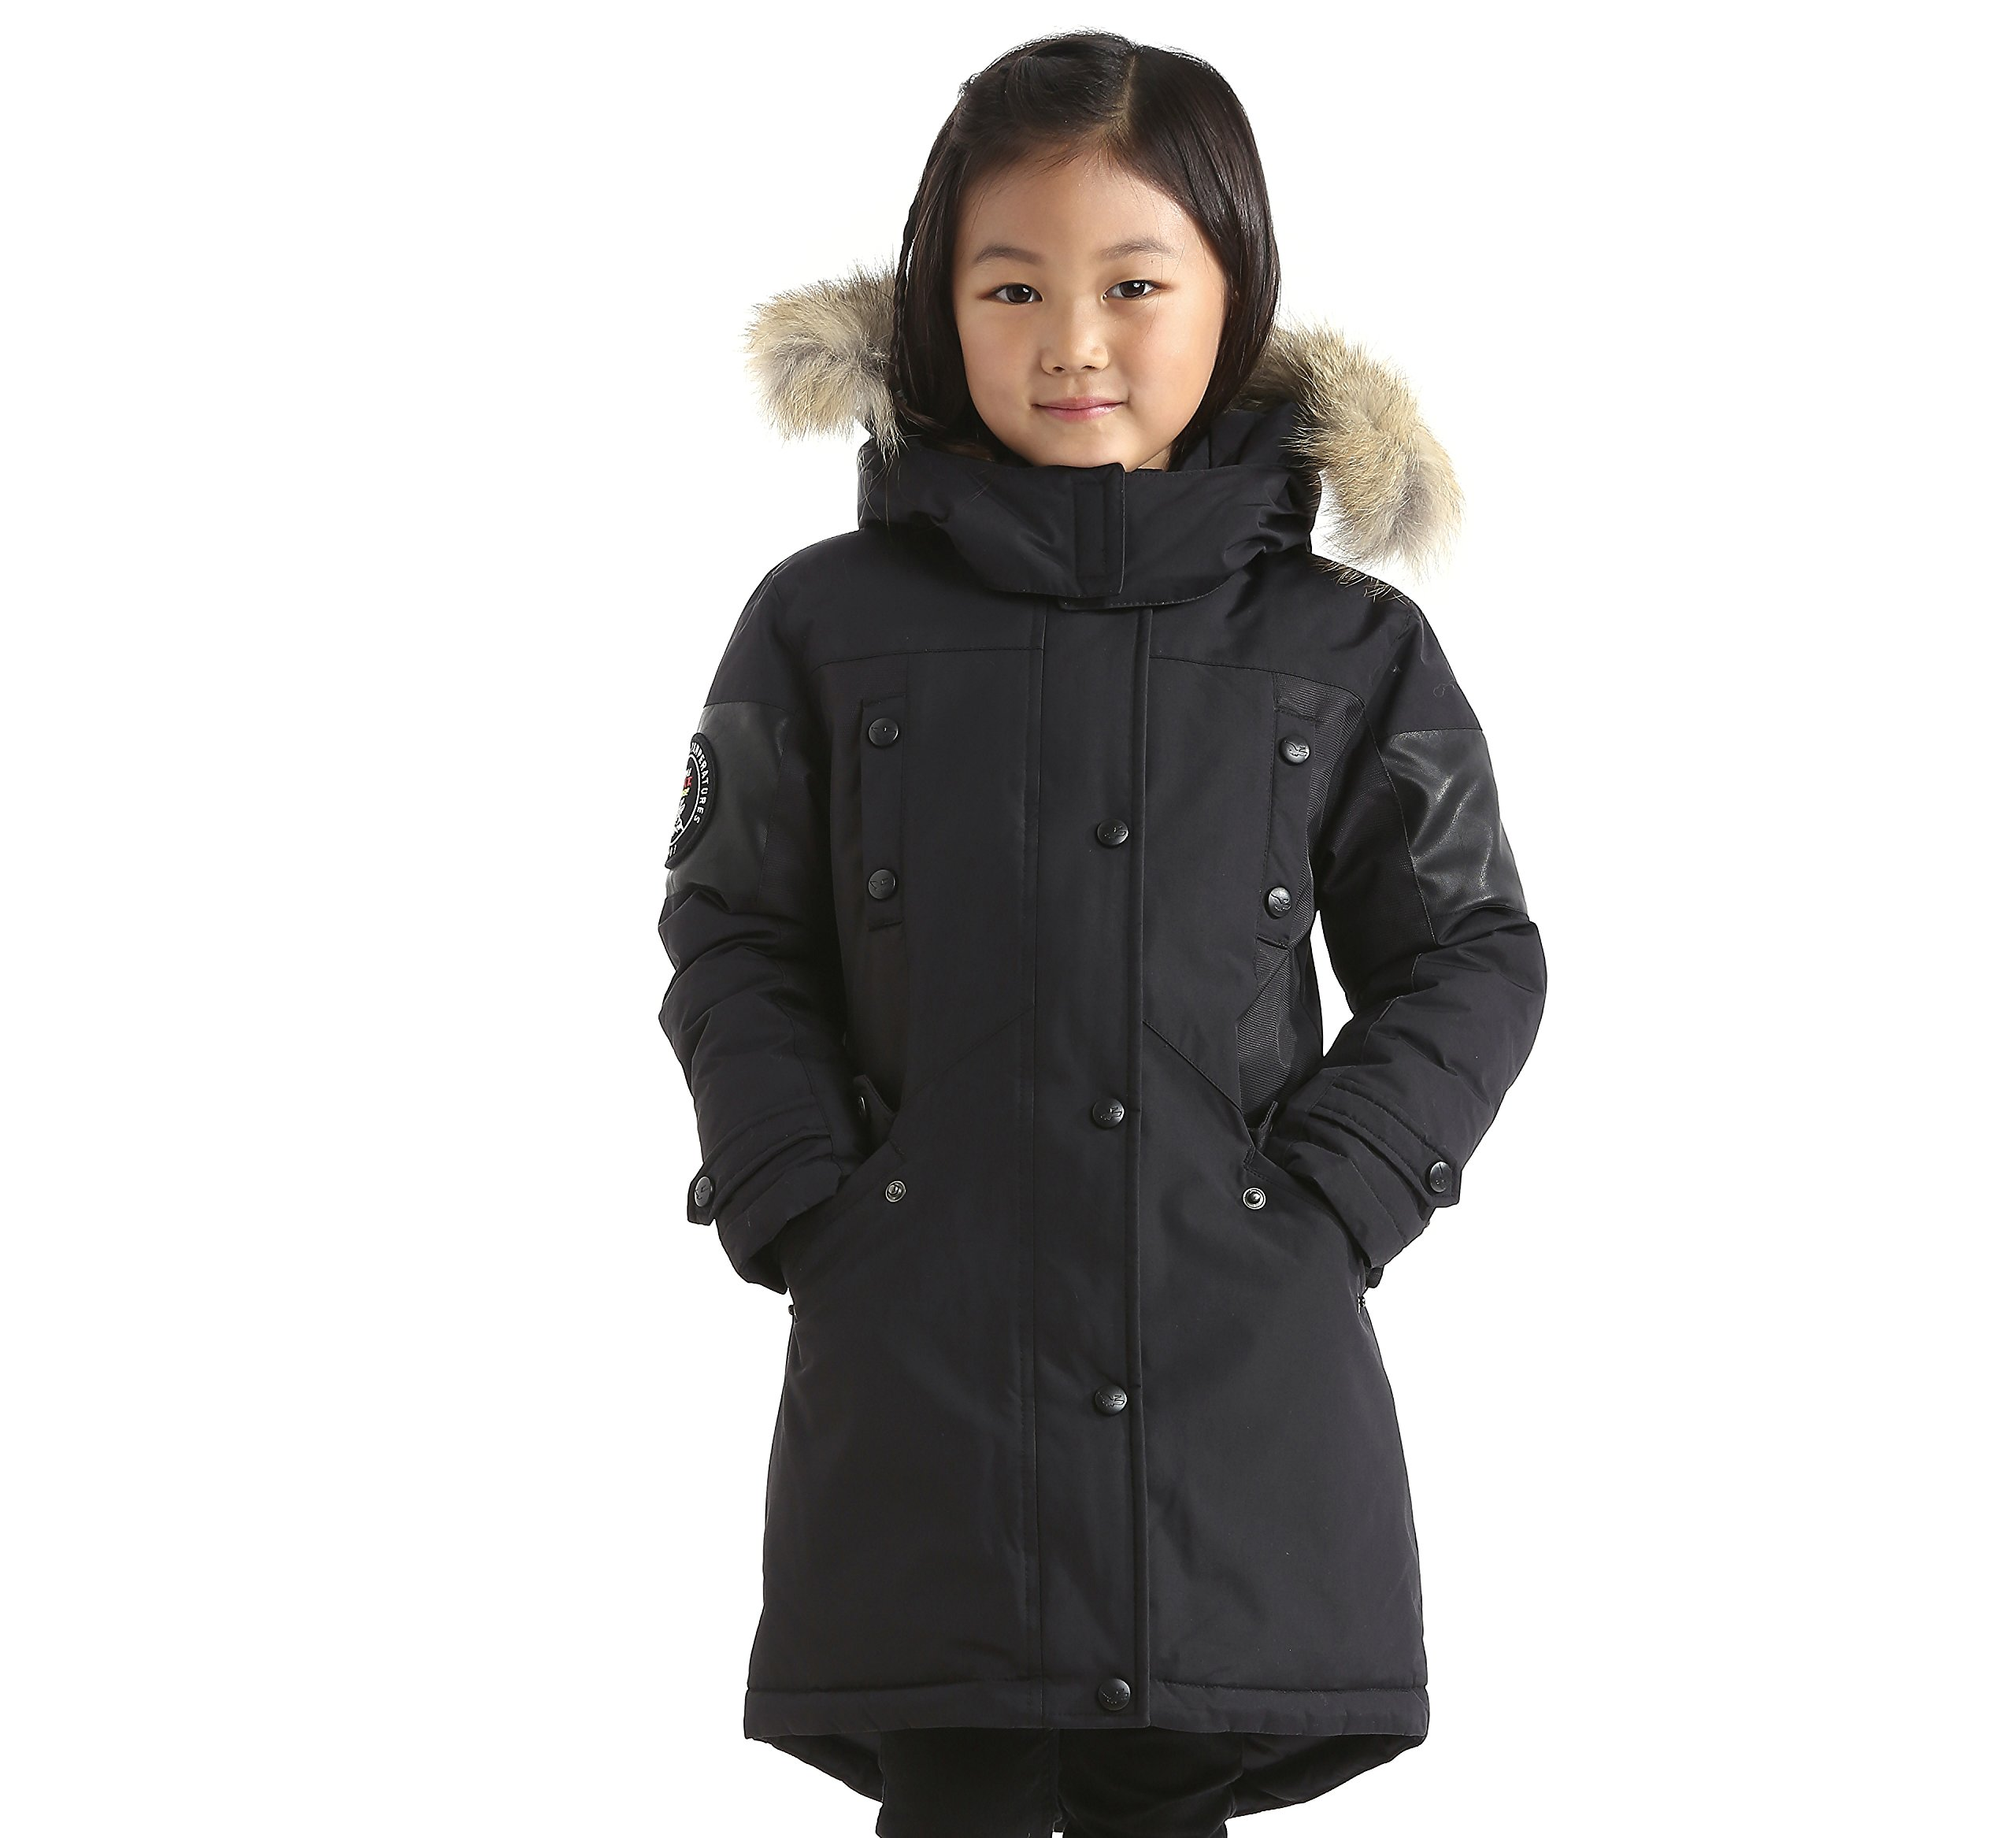 Triple F.A.T. Goose Embree Girls Down Jacket Parka with Real Coyote Fur (10, Black) by Triple F.A.T. Goose (Image #3)